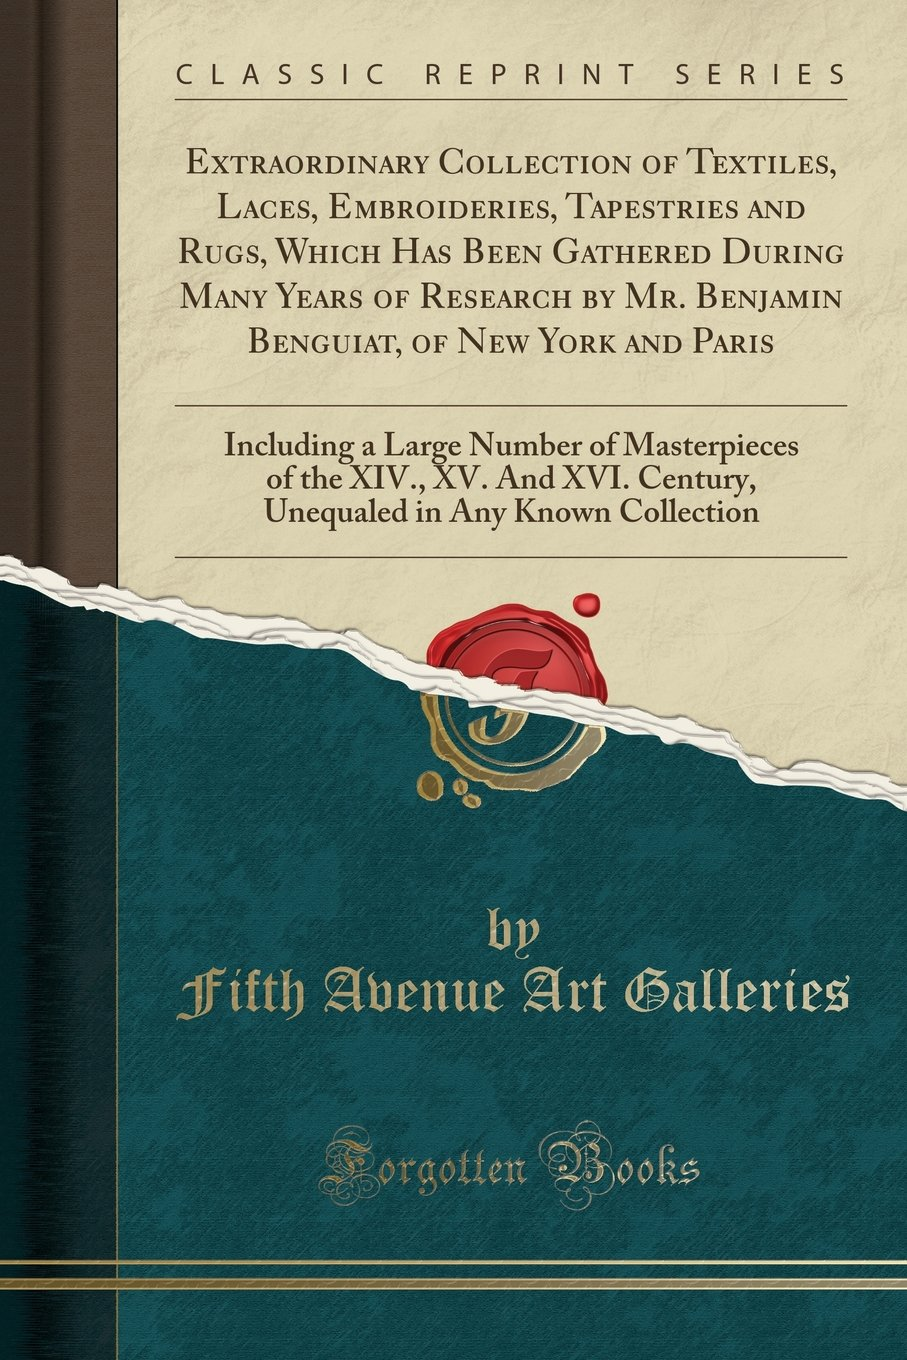 Download Extraordinary Collection of Textiles, Laces, Embroideries, Tapestries and Rugs, Which Has Been Gathered During Many Years of Research by Mr. Benjamin ... Masterpieces of the XIV., XV. And XVI. Centu pdf